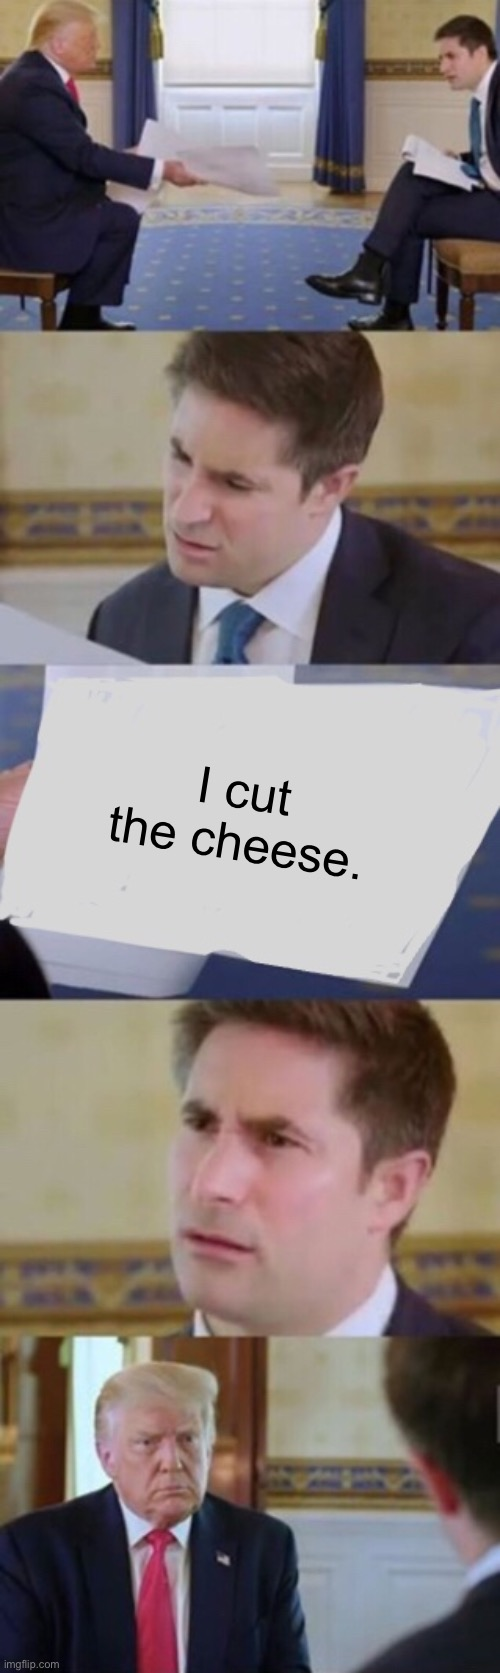 Trump interview |  I cut the cheese. | image tagged in trump interview | made w/ Imgflip meme maker